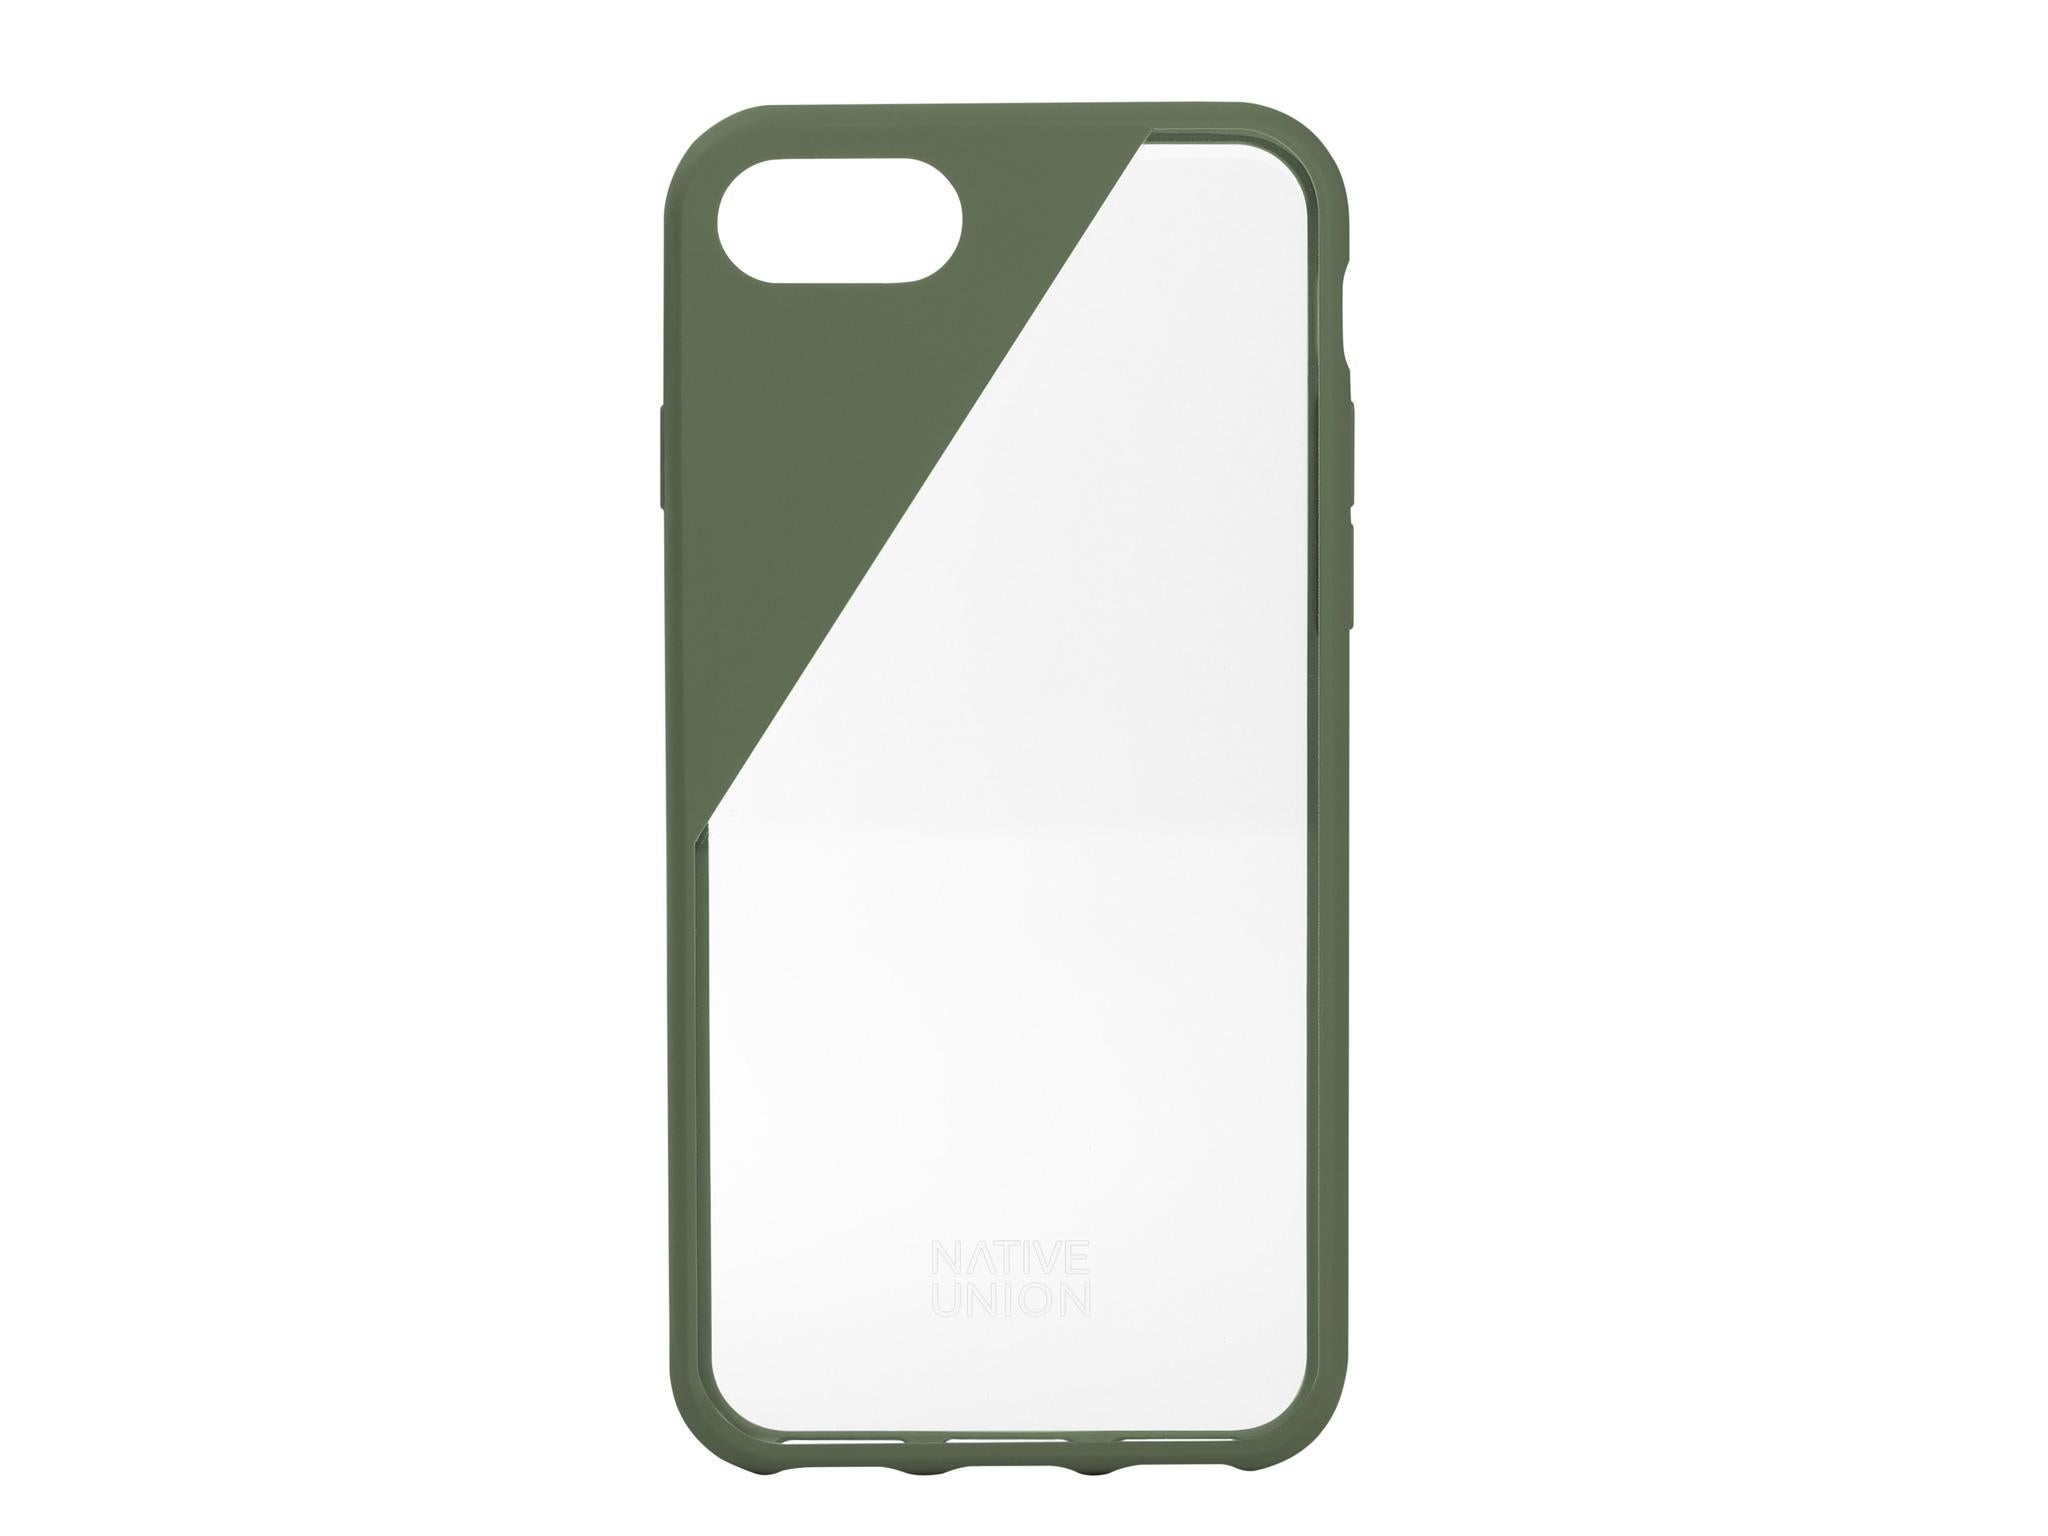 ipalm phone case iphone 7